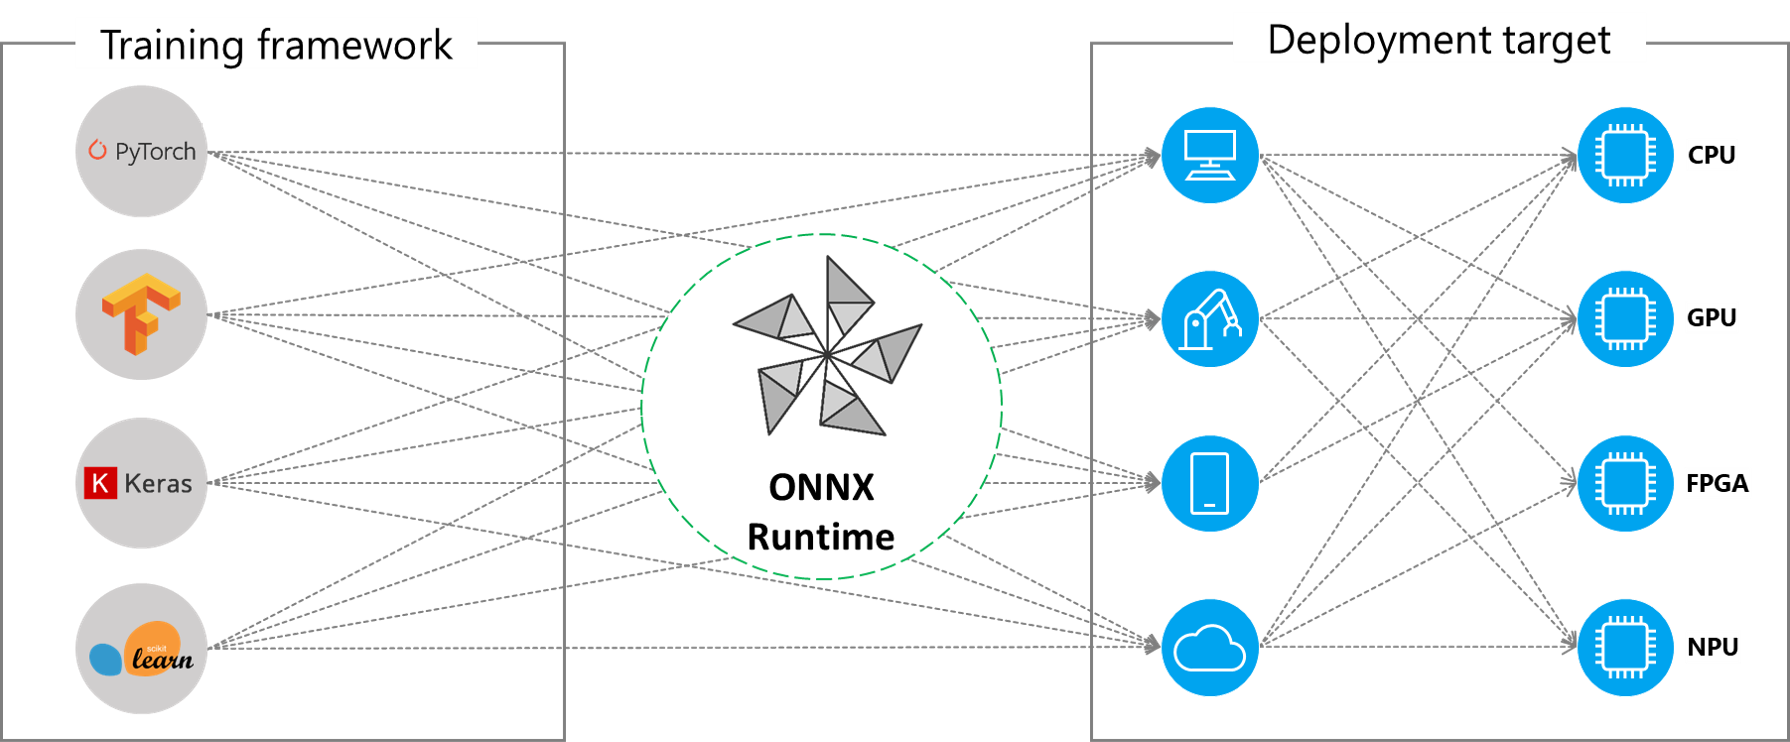 Executing ONNX models across different HW environments